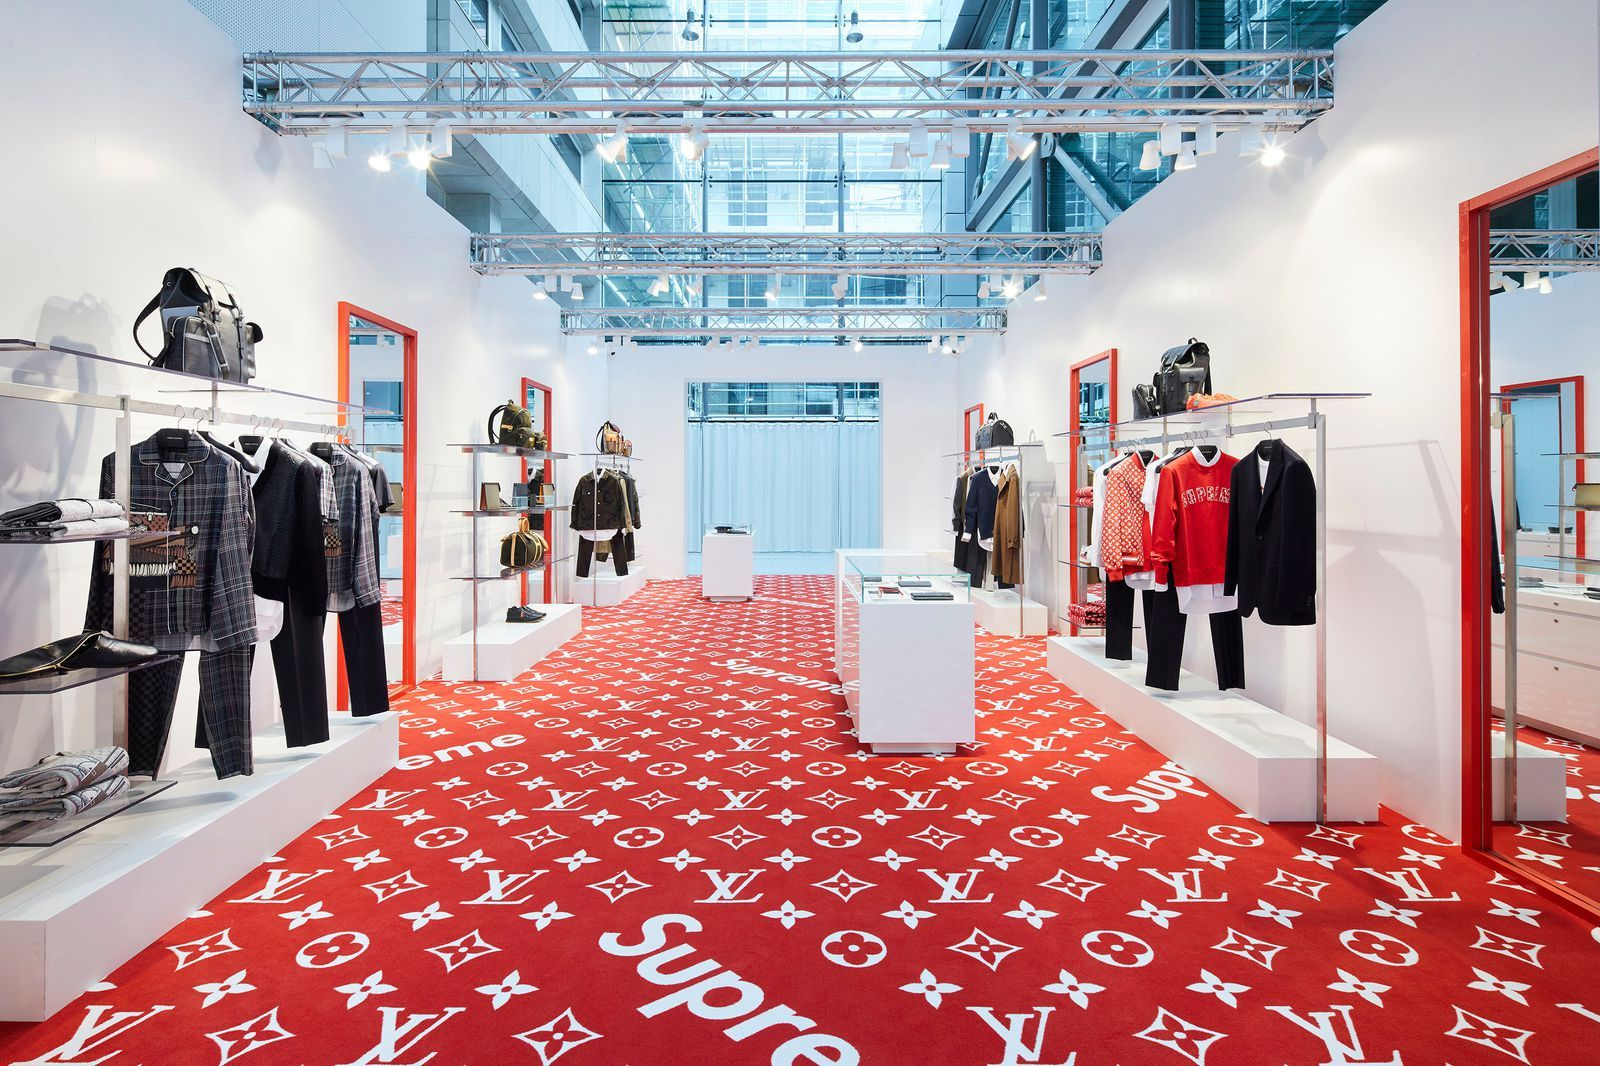 aeb859d2d1a Louis Vuitton's Supreme pop-up store has arrived in London | Women's ...